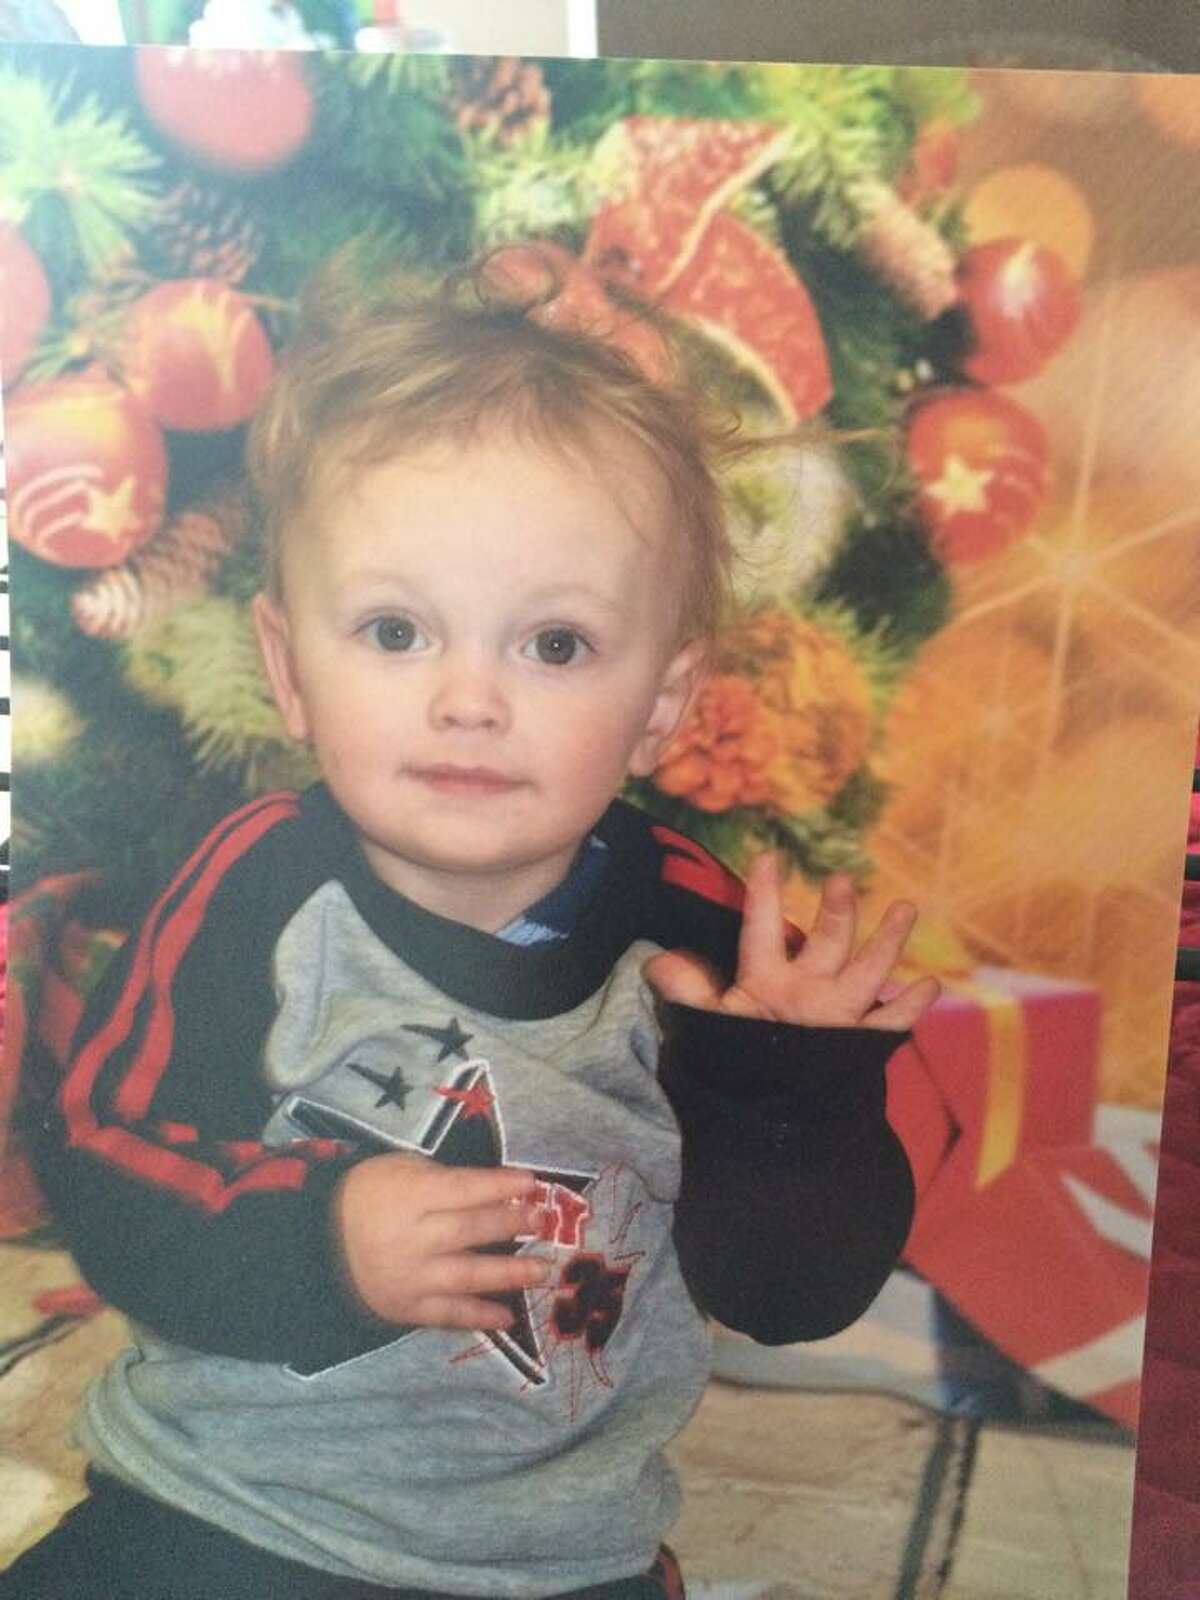 """Eli James """"EJ"""" Hotaling, 1, of Canajoharie, died Dec. 9 after swallowing liquid nicotine. ORG XMIT: q8OU2lO-xc43GF8FQSoY"""